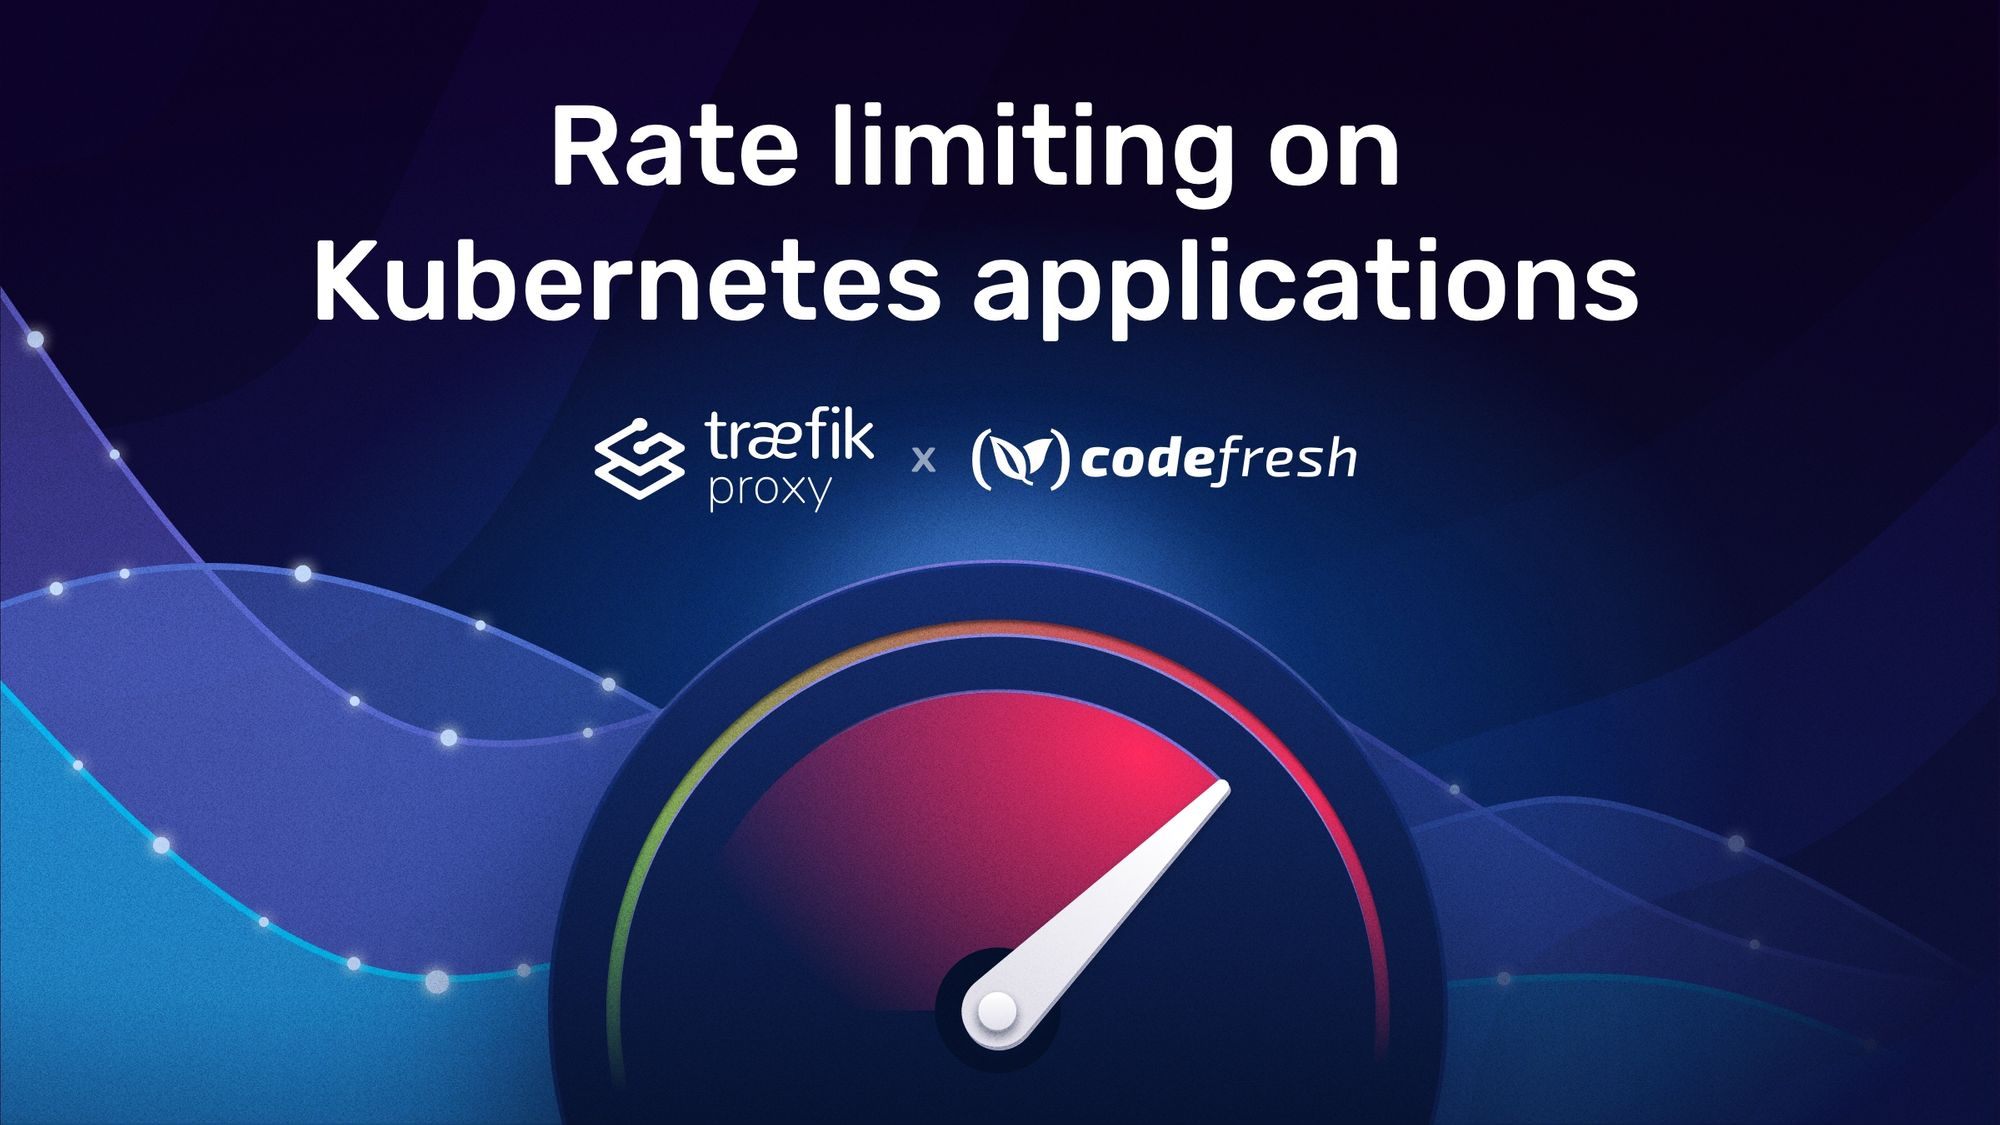 Rate limiting on Kubernetes applications with Traefik Proxy and Codefresh